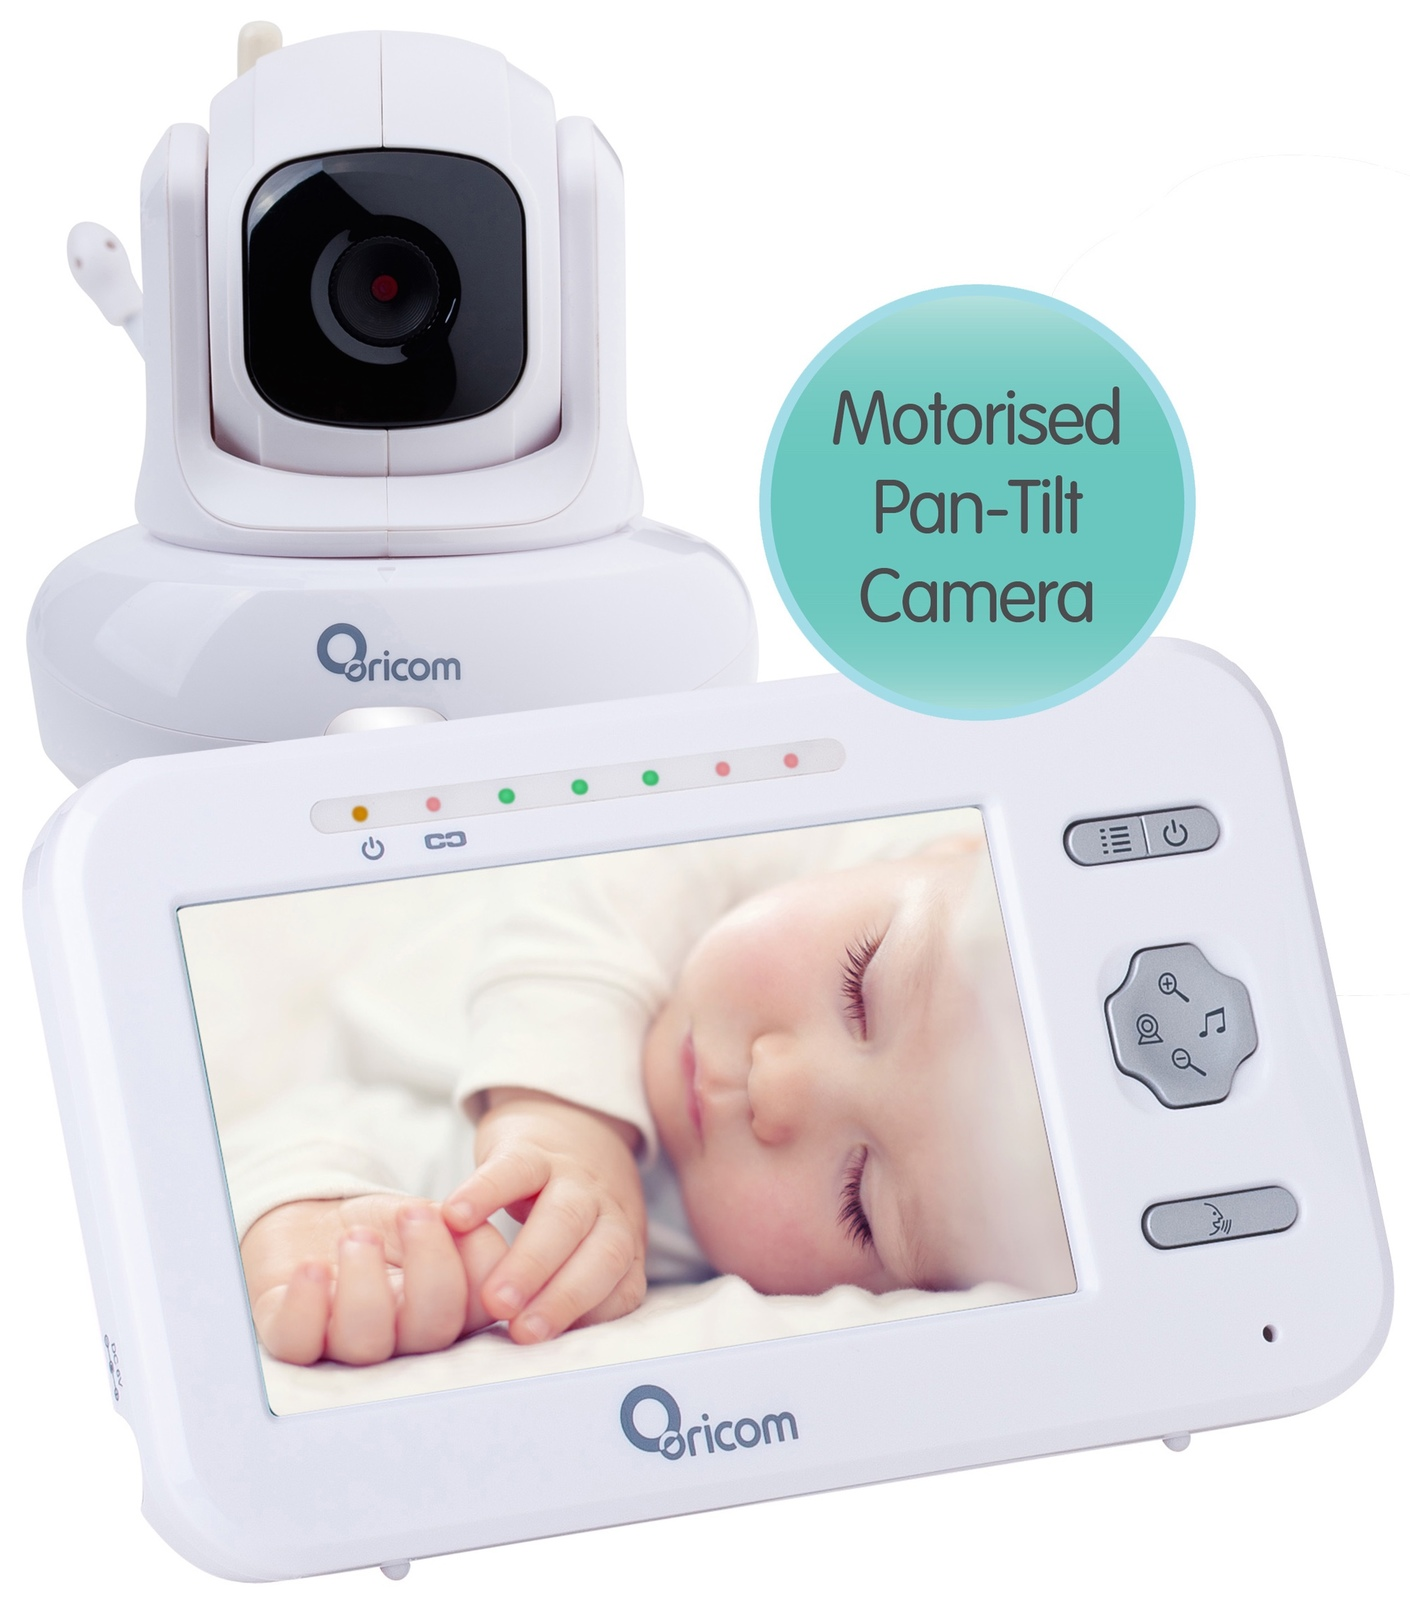 Oricom: Secure850 Digital Video Baby Monitor with Pan-Tilt Camera image